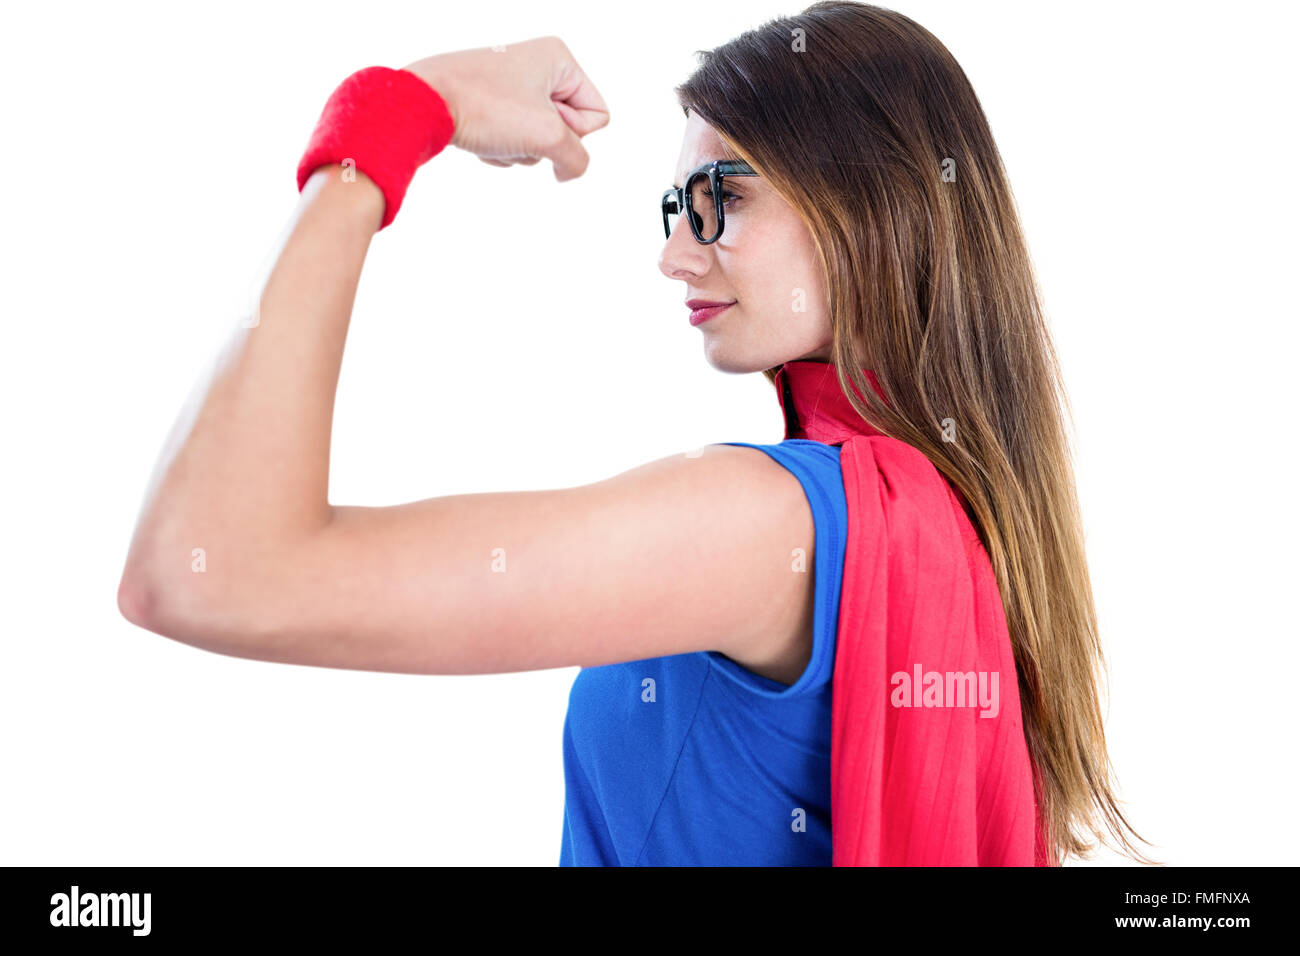 Woman in superhero costume while flexing muscles  sc 1 st  Alamy & Woman in superhero costume while flexing muscles Stock Photo ...